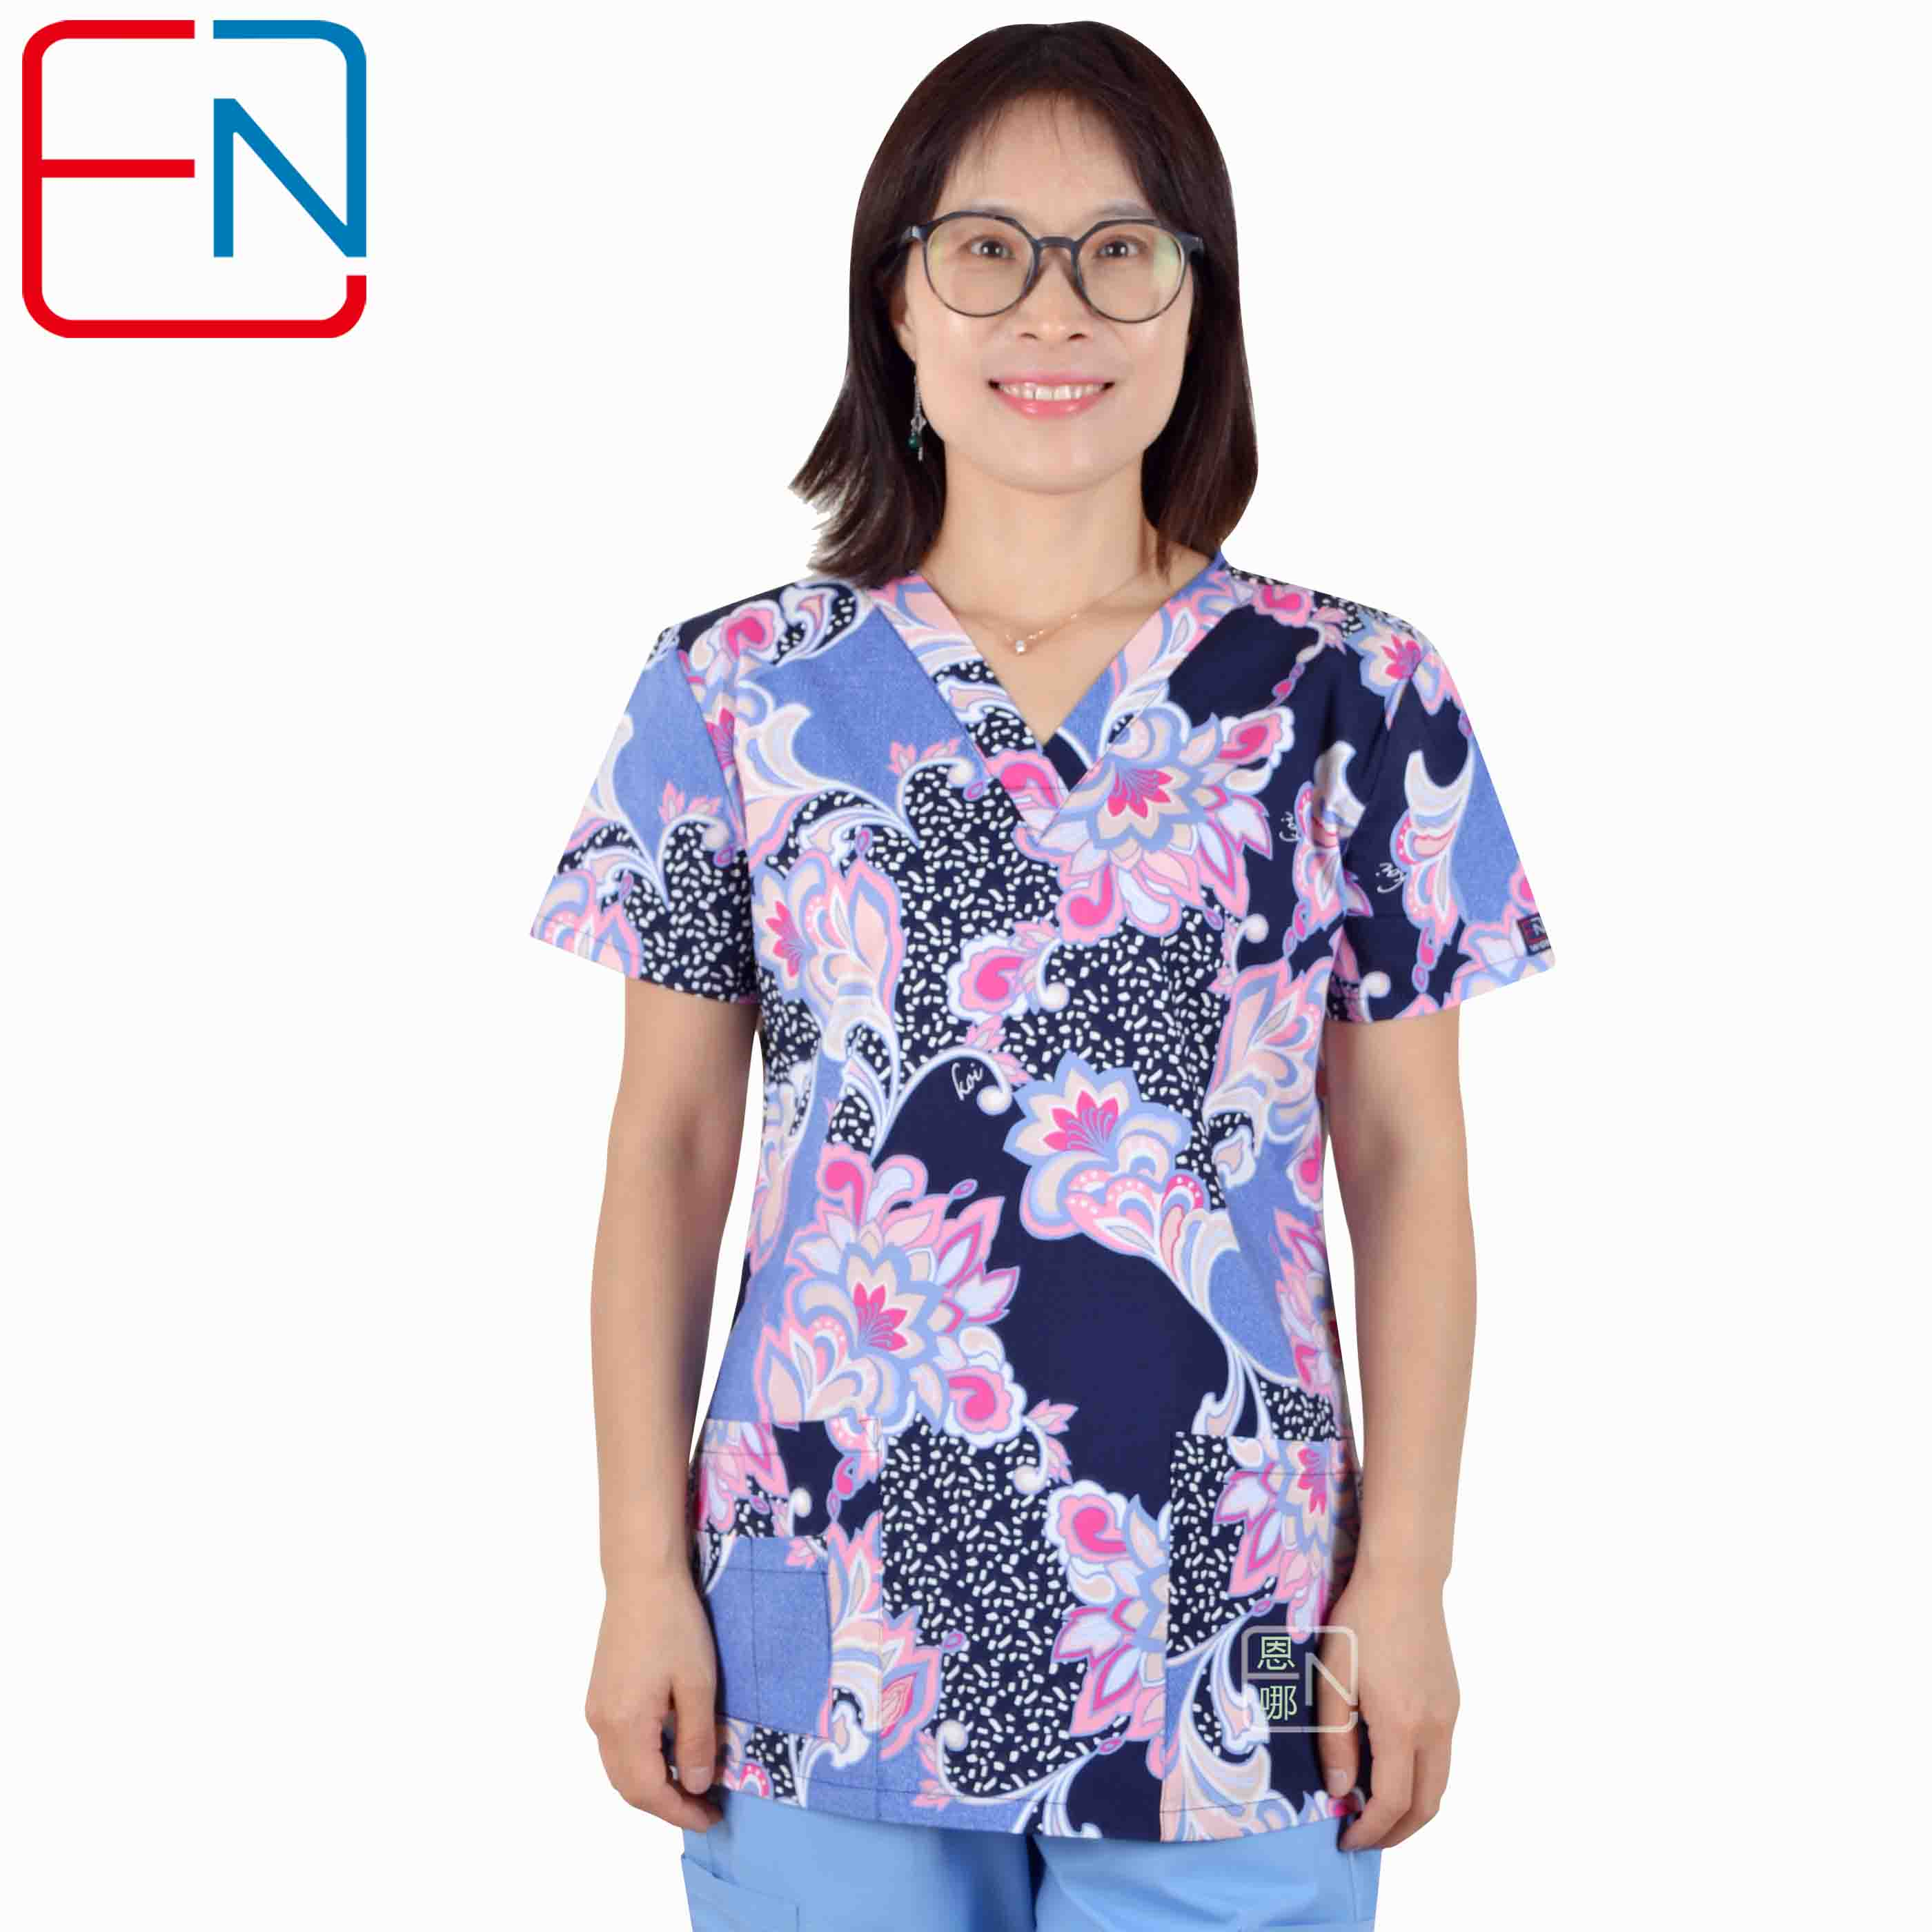 180505 NEW Hennar Women Scrub Top With V Neck 100% Cotton Surgical Scrubs Top Limited Surgical Scrub Tops